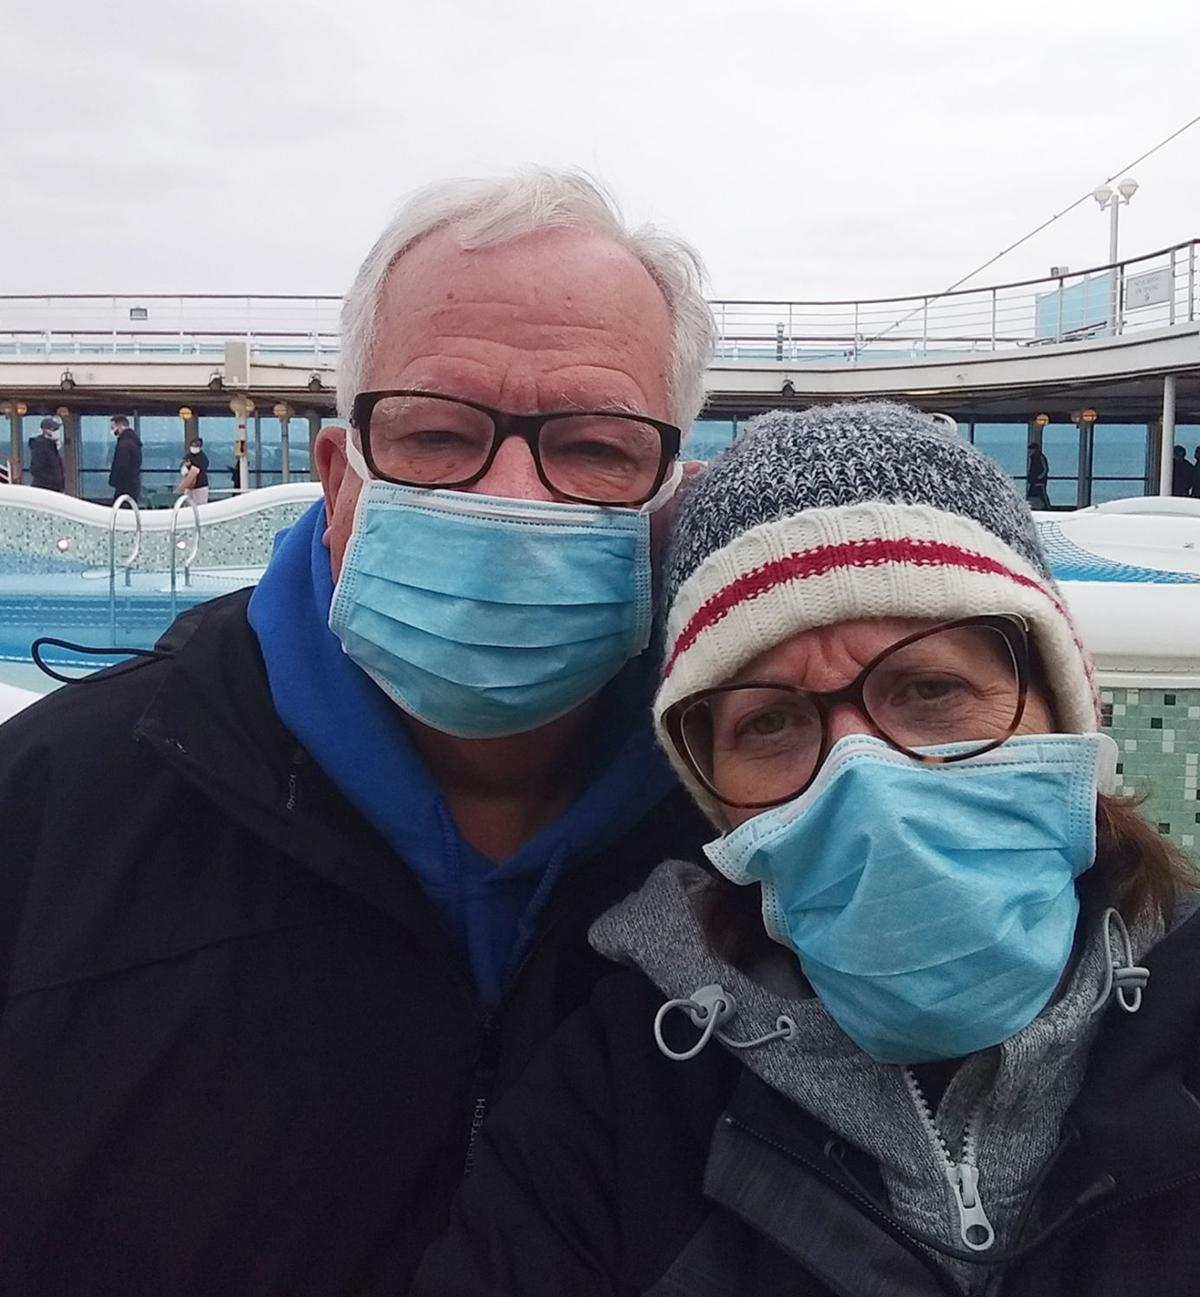 West Island couple's ongoing coronavirus ordeal